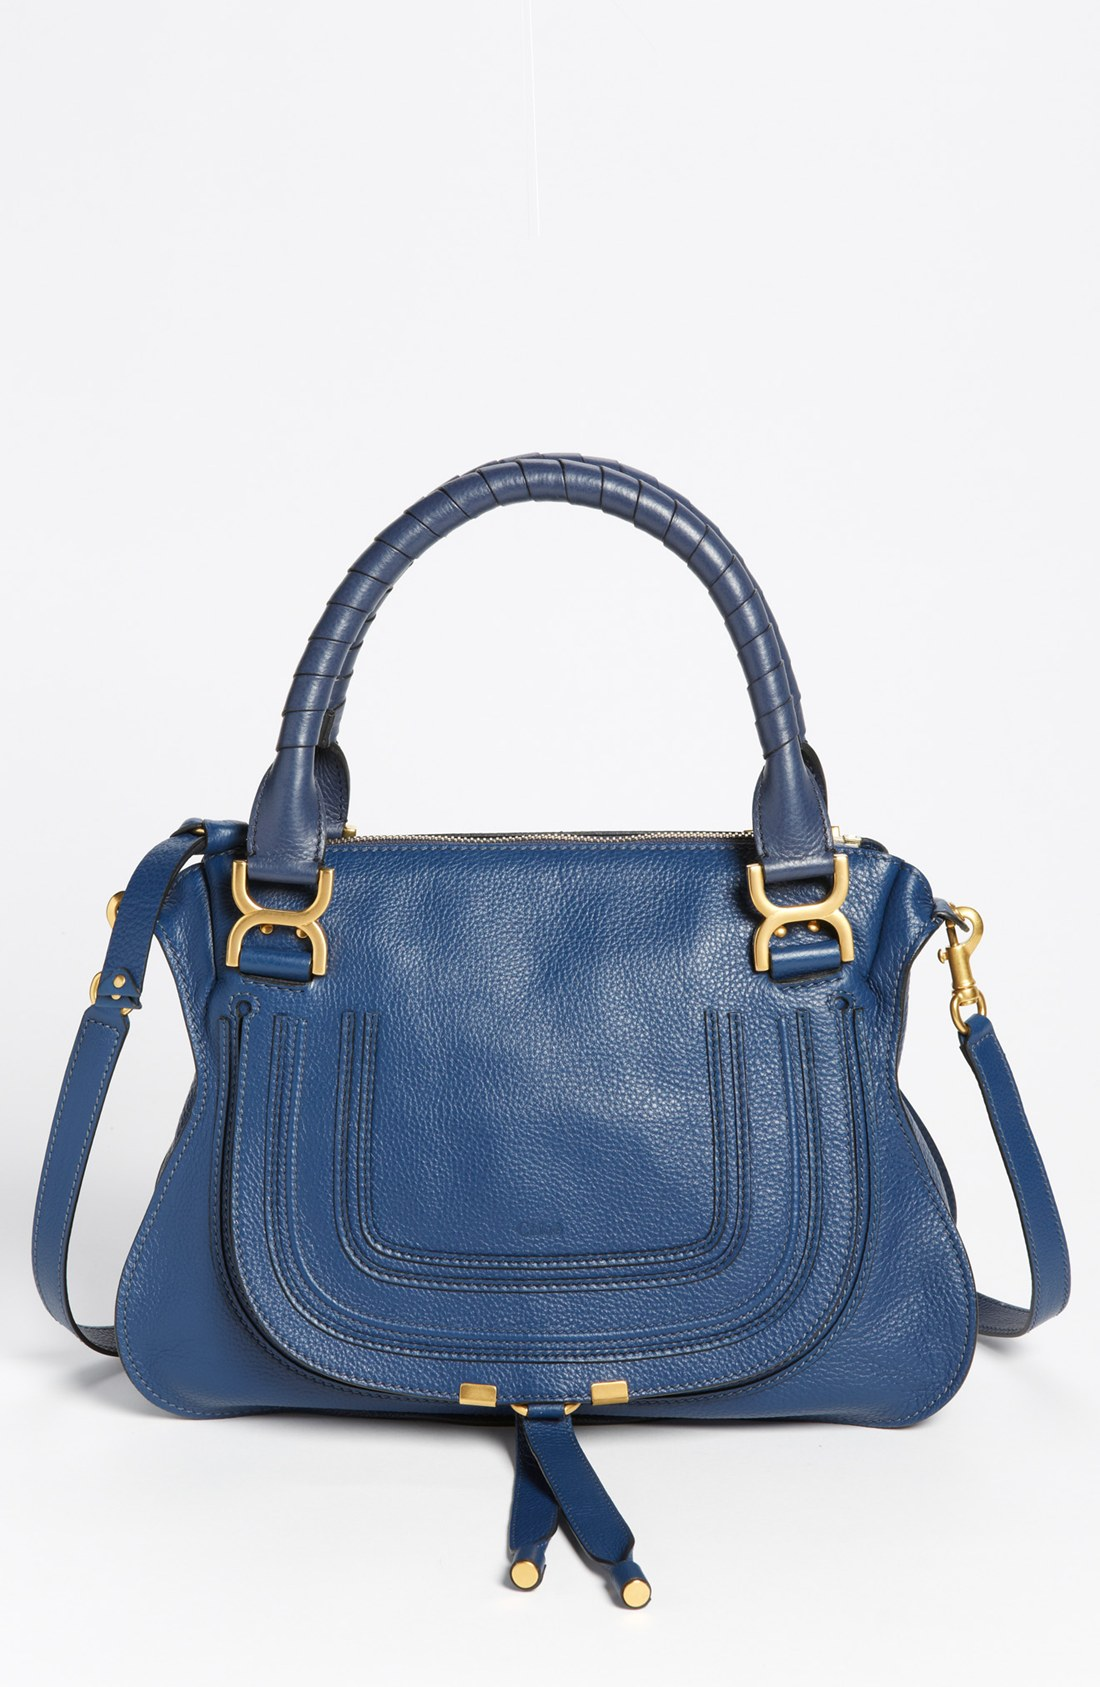 chlo medium marcie leather satchel in blue royal navy lyst. Black Bedroom Furniture Sets. Home Design Ideas